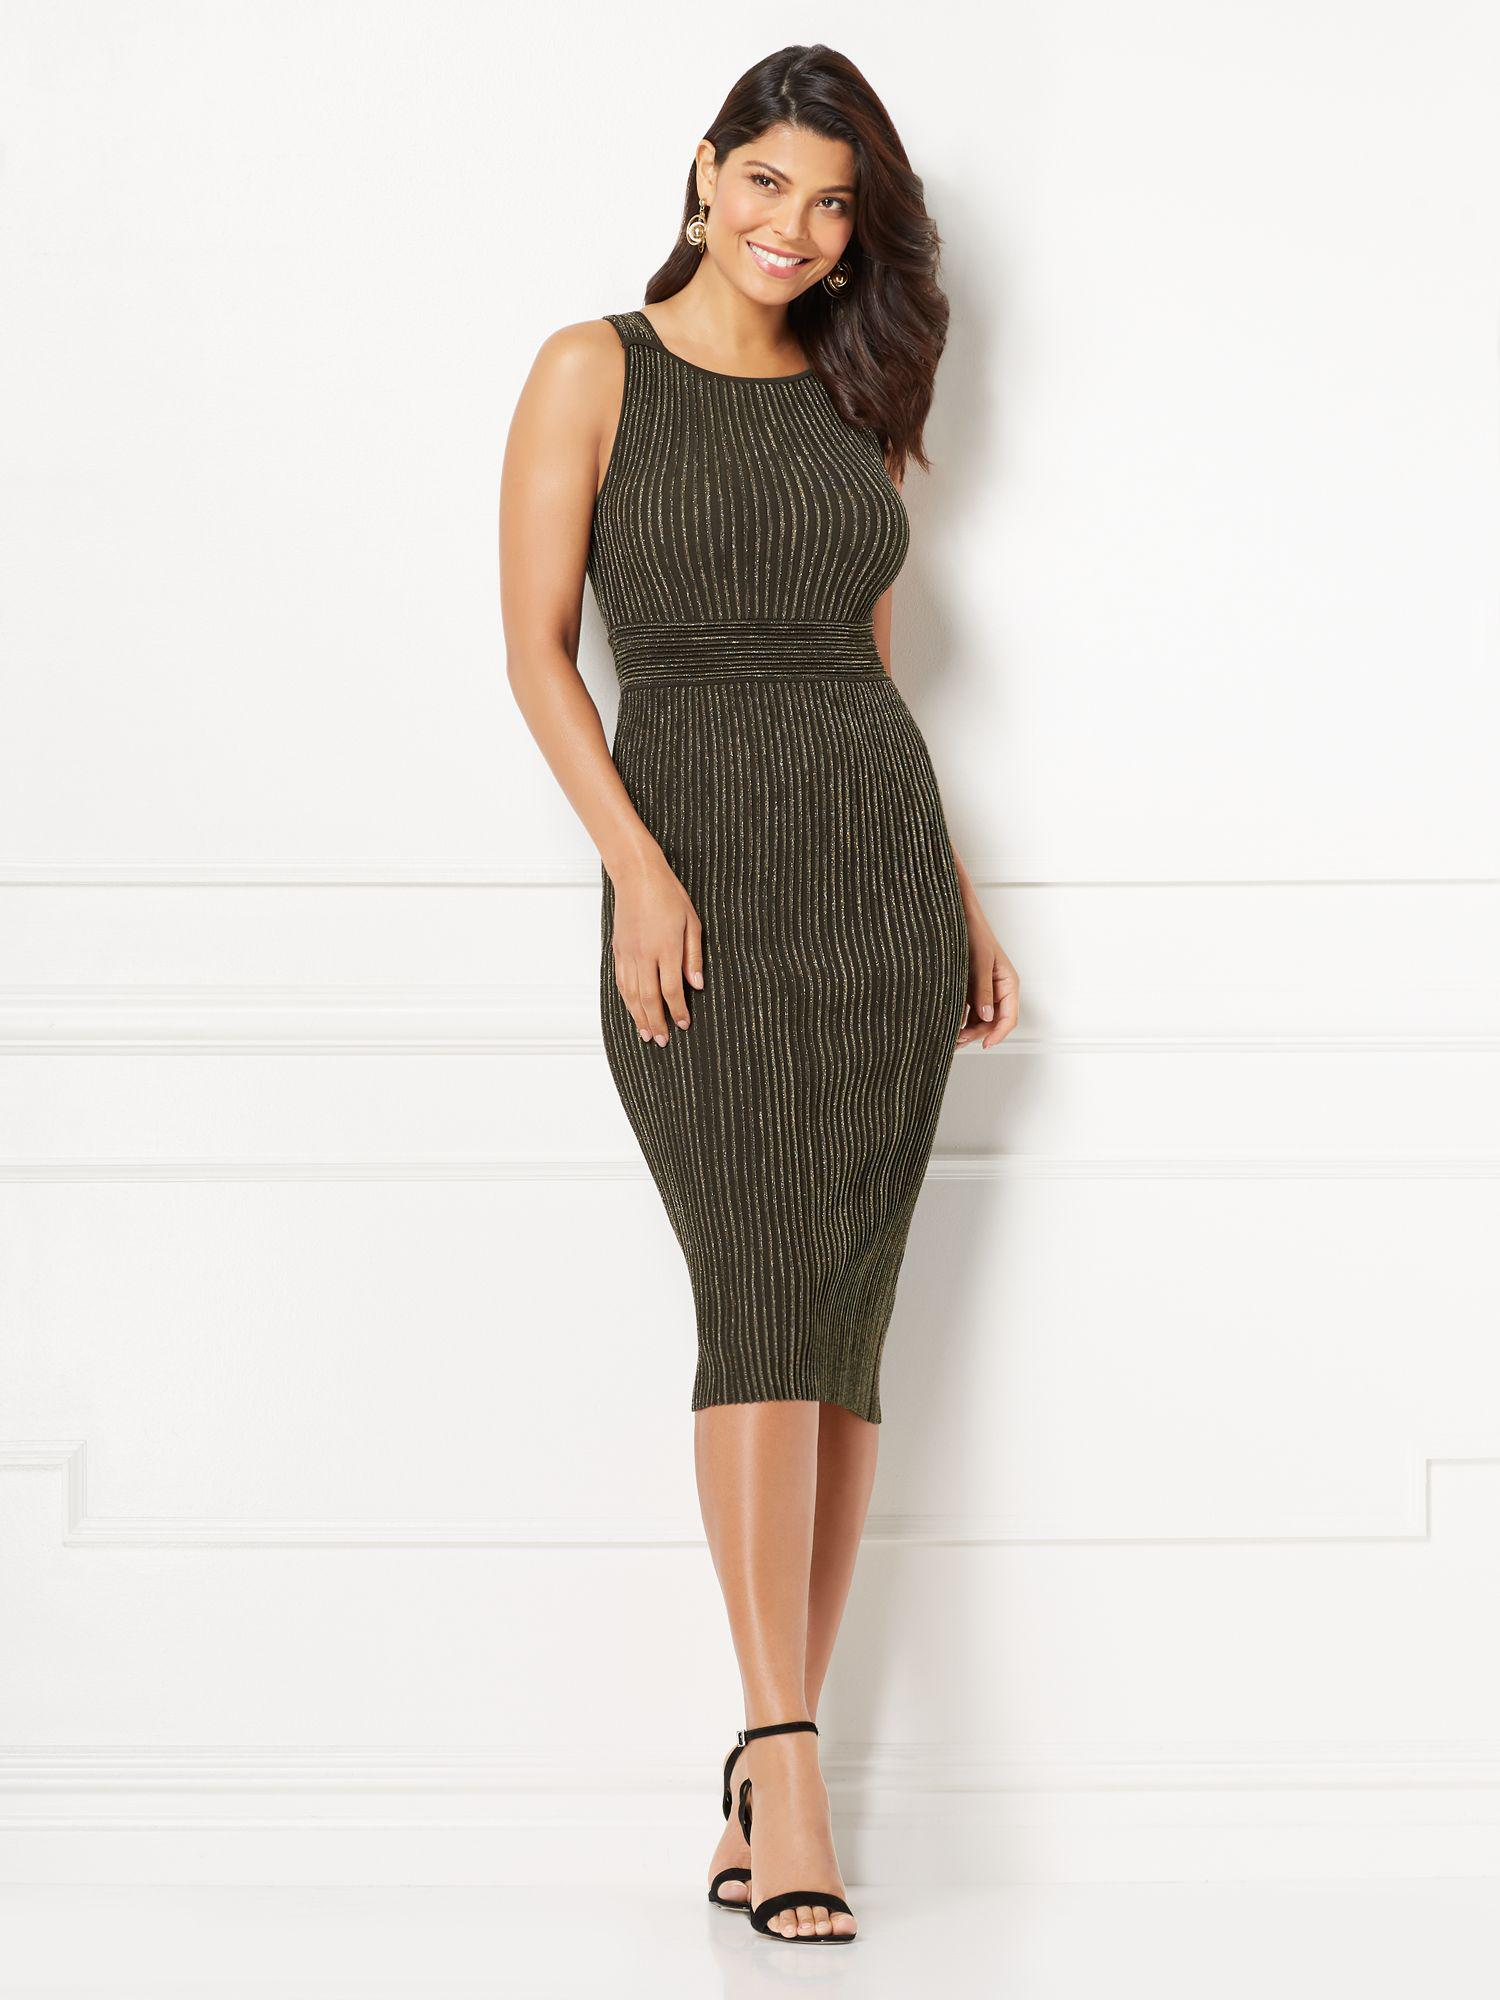 f56551c34b0 New York   Company Eva Mendes Collection - Tianna Sweater Dress - Lyst